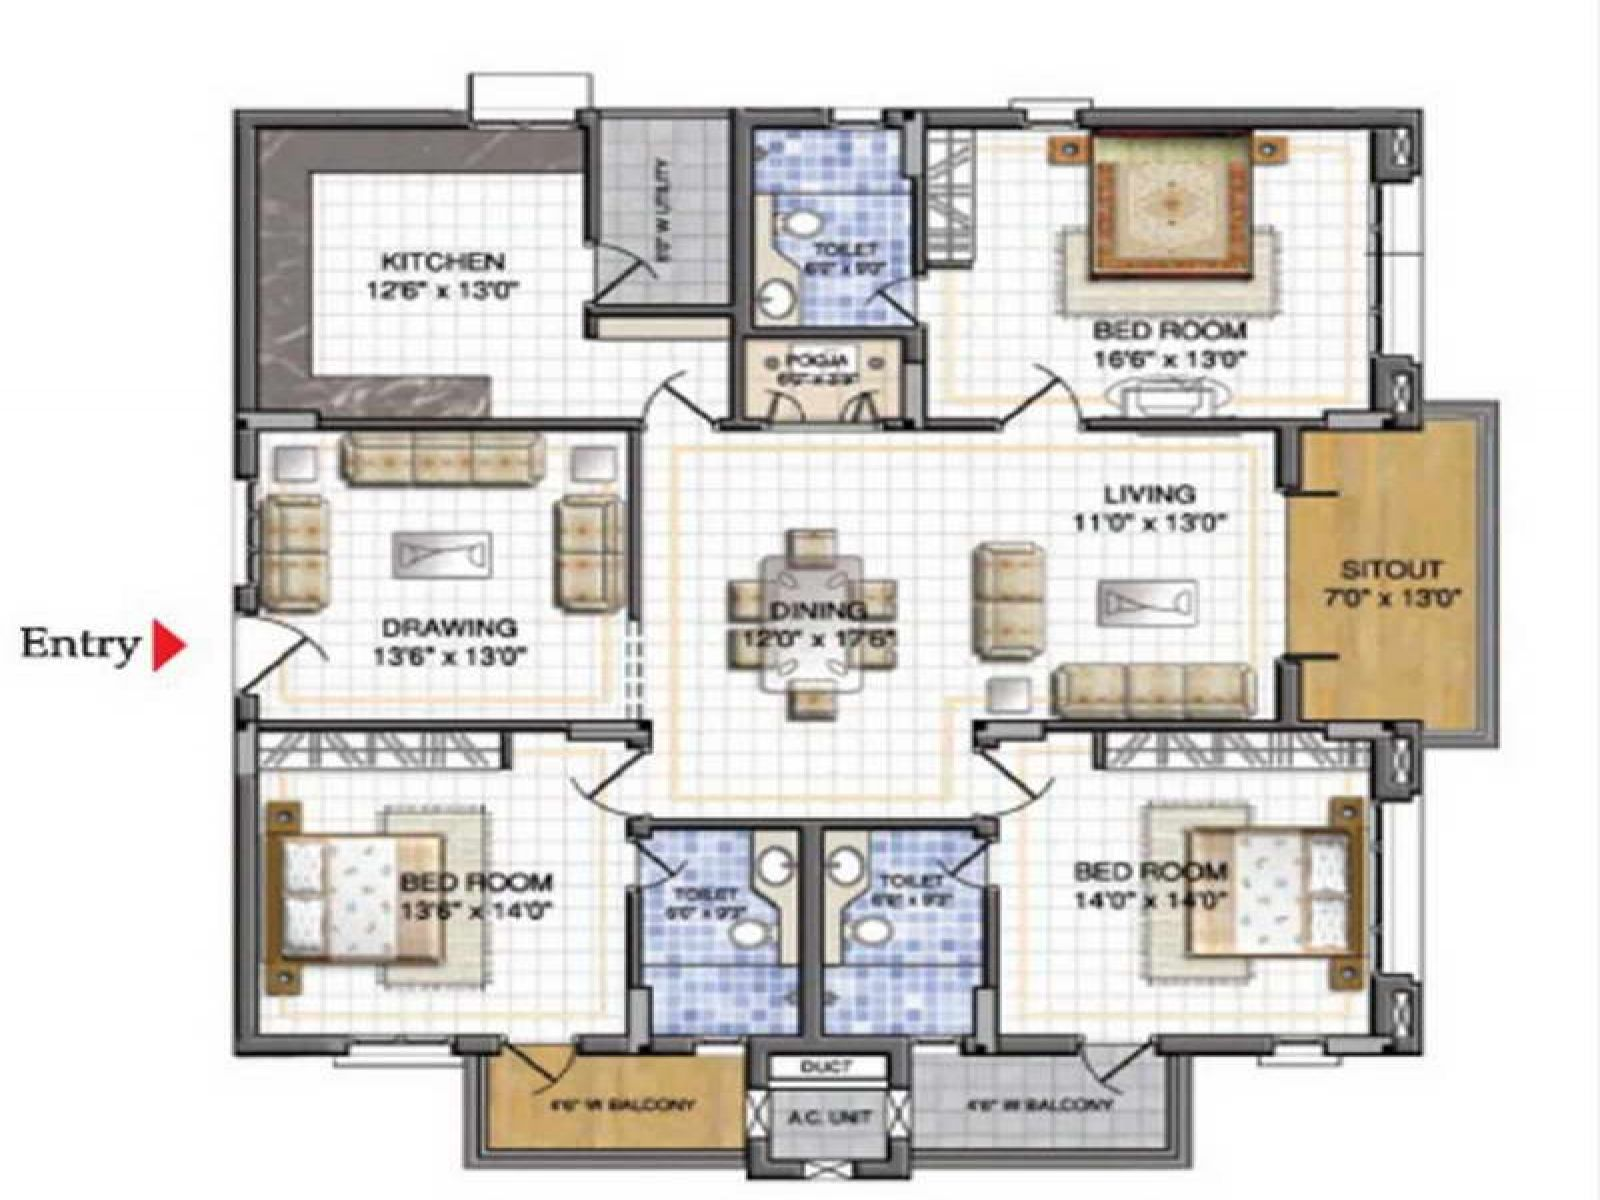 Sweet home 3d plans google search house designs pinterest layout online house plans - Online home decorating ideas ...